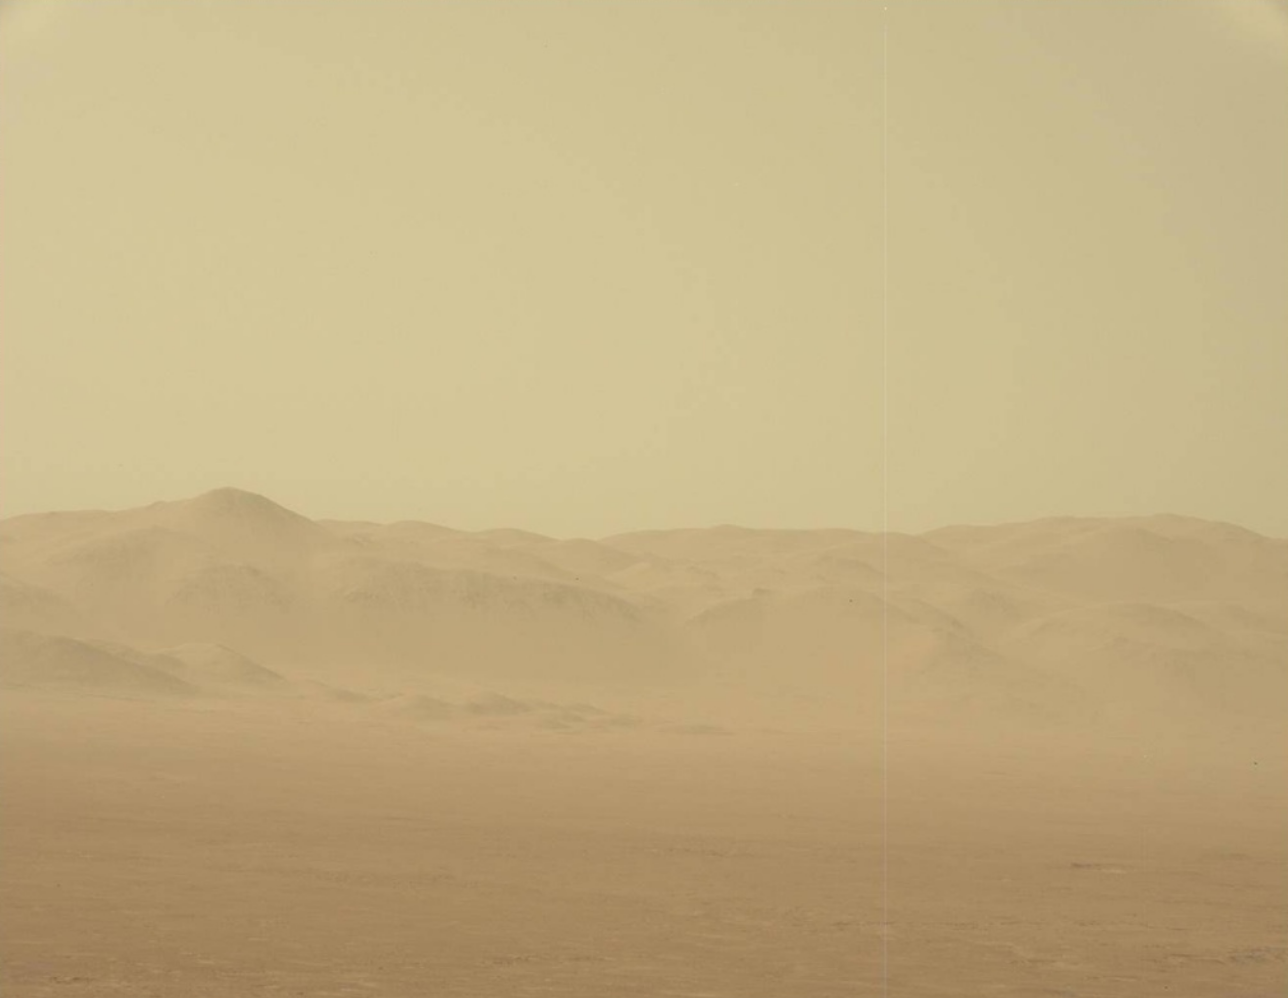 A view of the Martian dust storm from the Curiosity rover's mast camera.